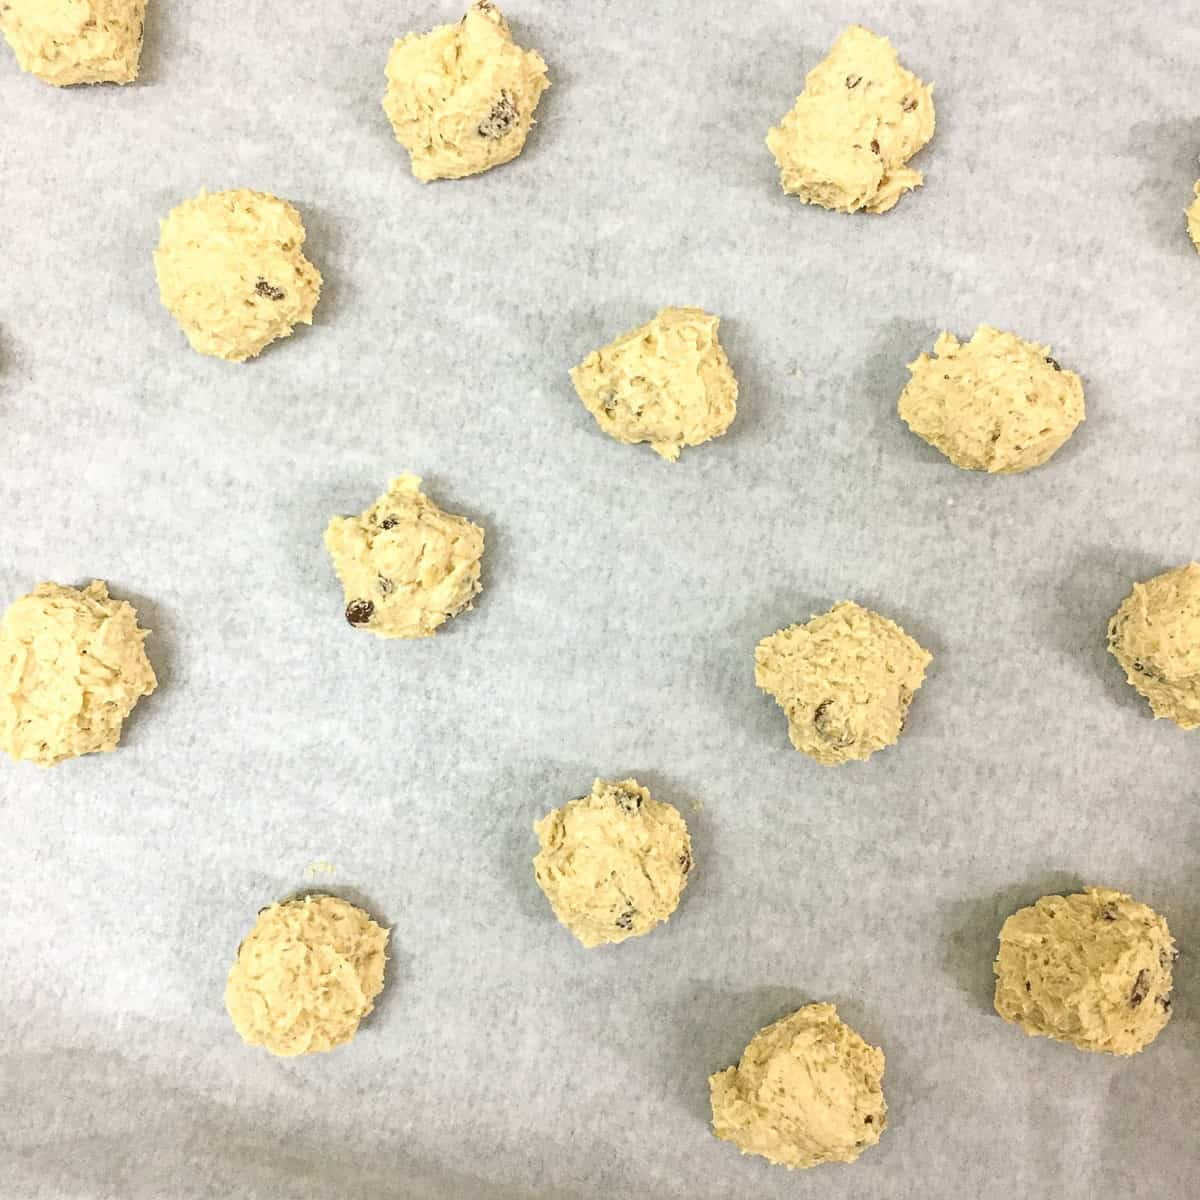 Round shaped cookie dough on parchment line tray